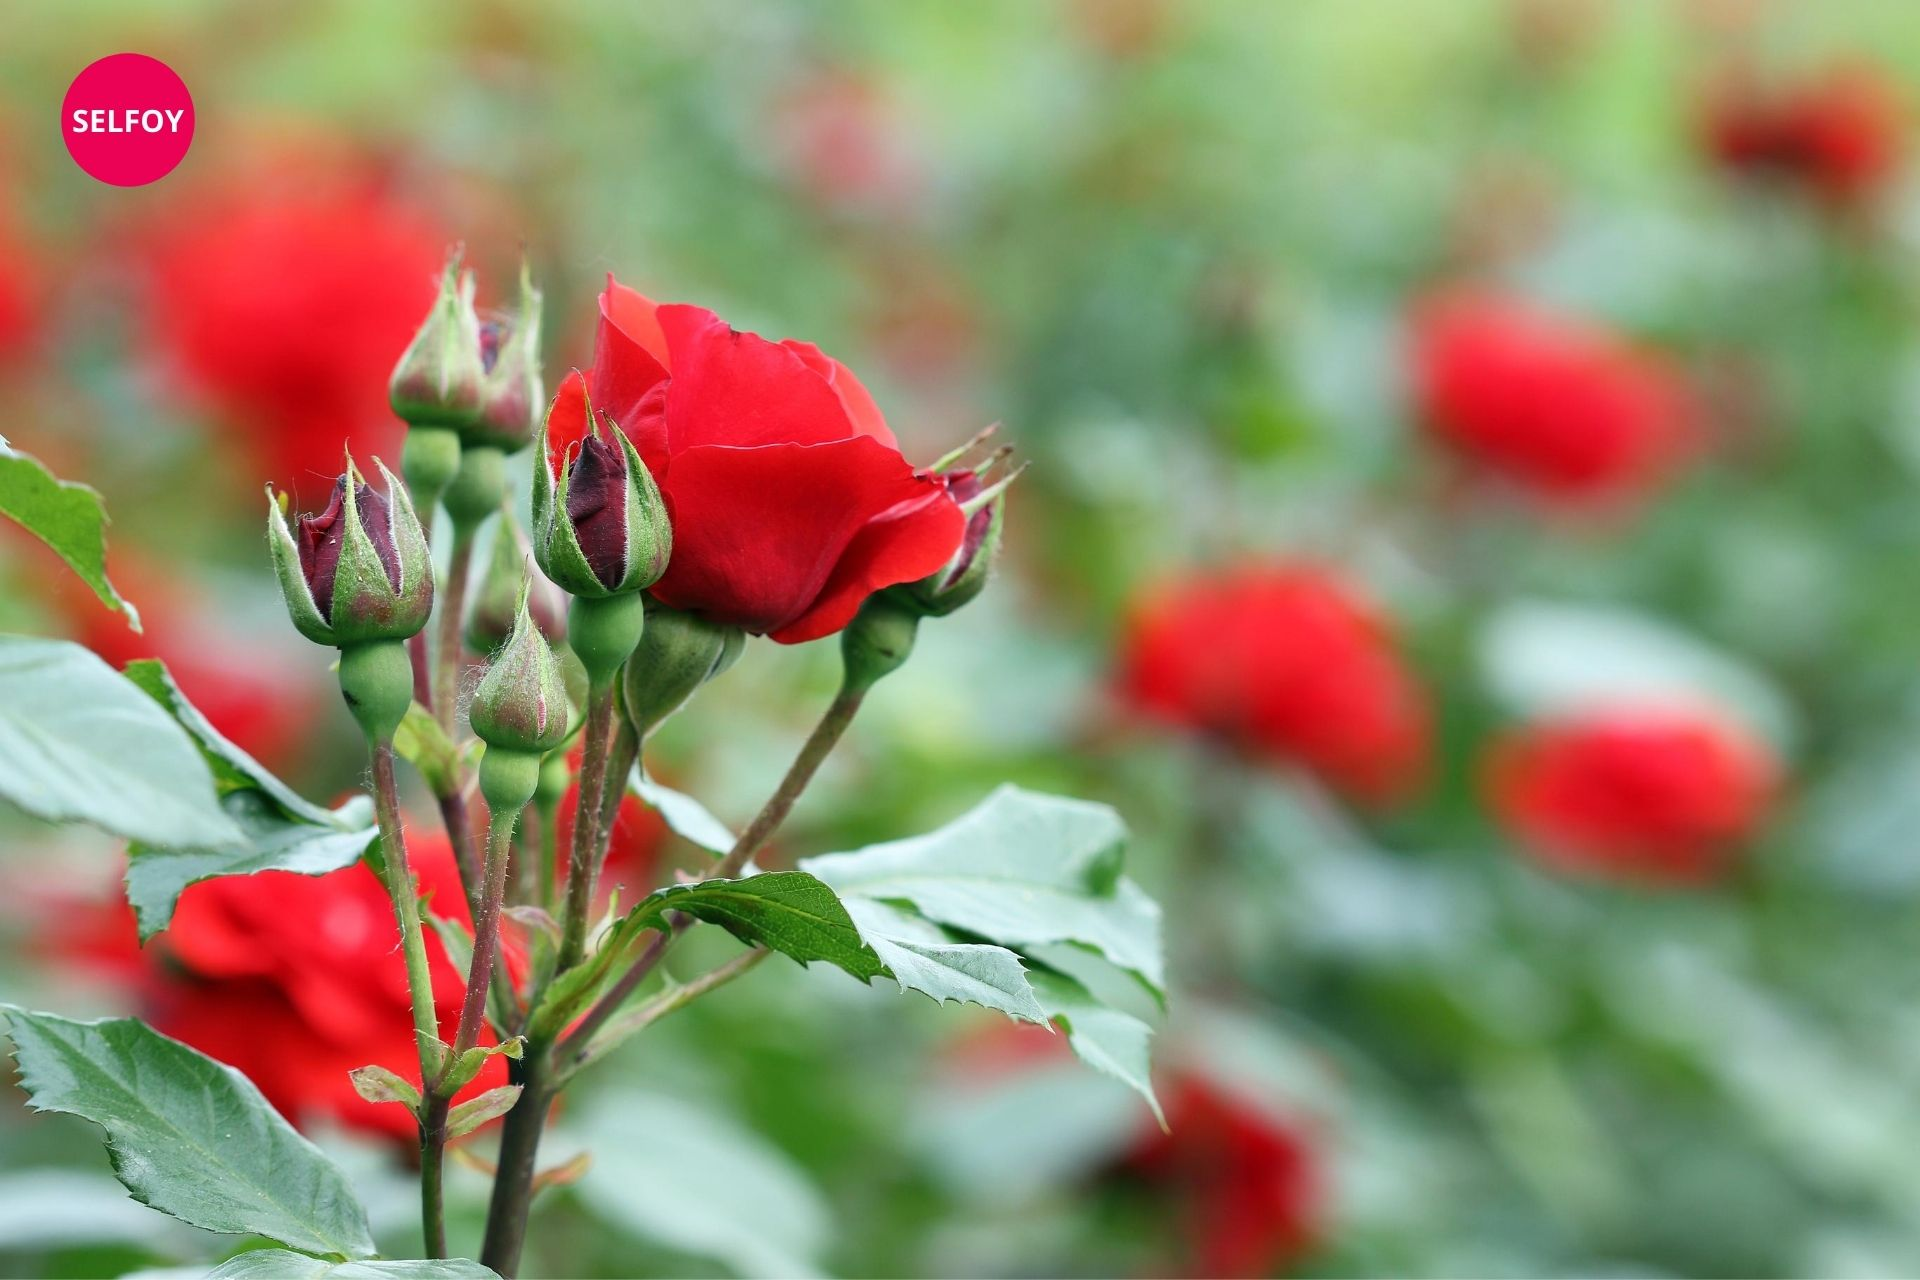 Red rose in the rose garden